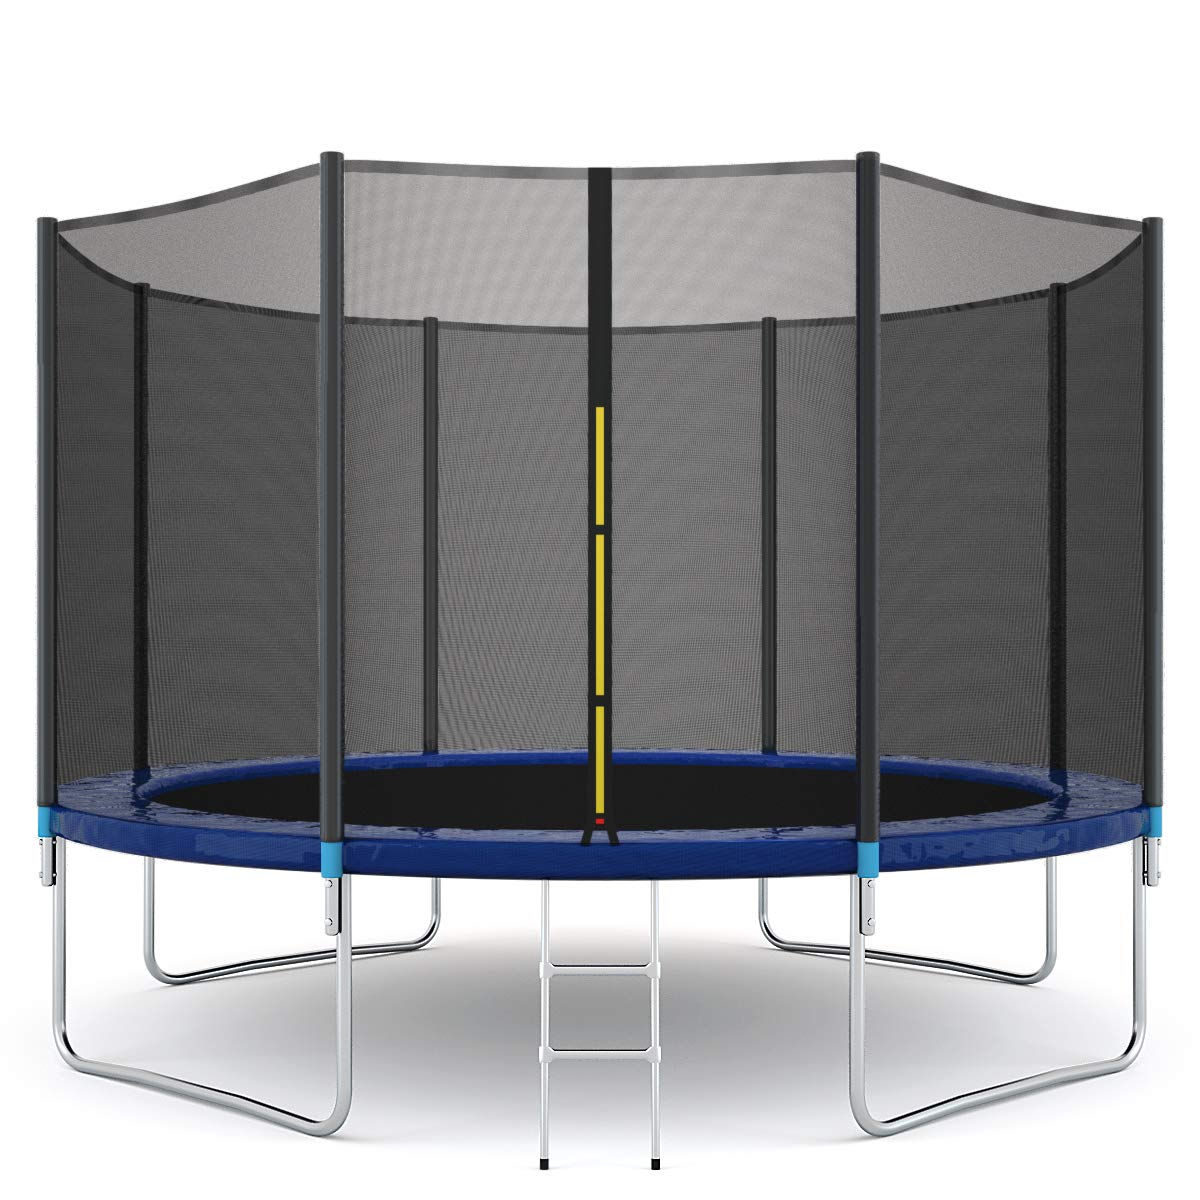 Giantex Trampoline Combo Bounce Jump Safety Enclosure Net W/Spring Pad Ladder, 12 FT by Giantex (Image #1)